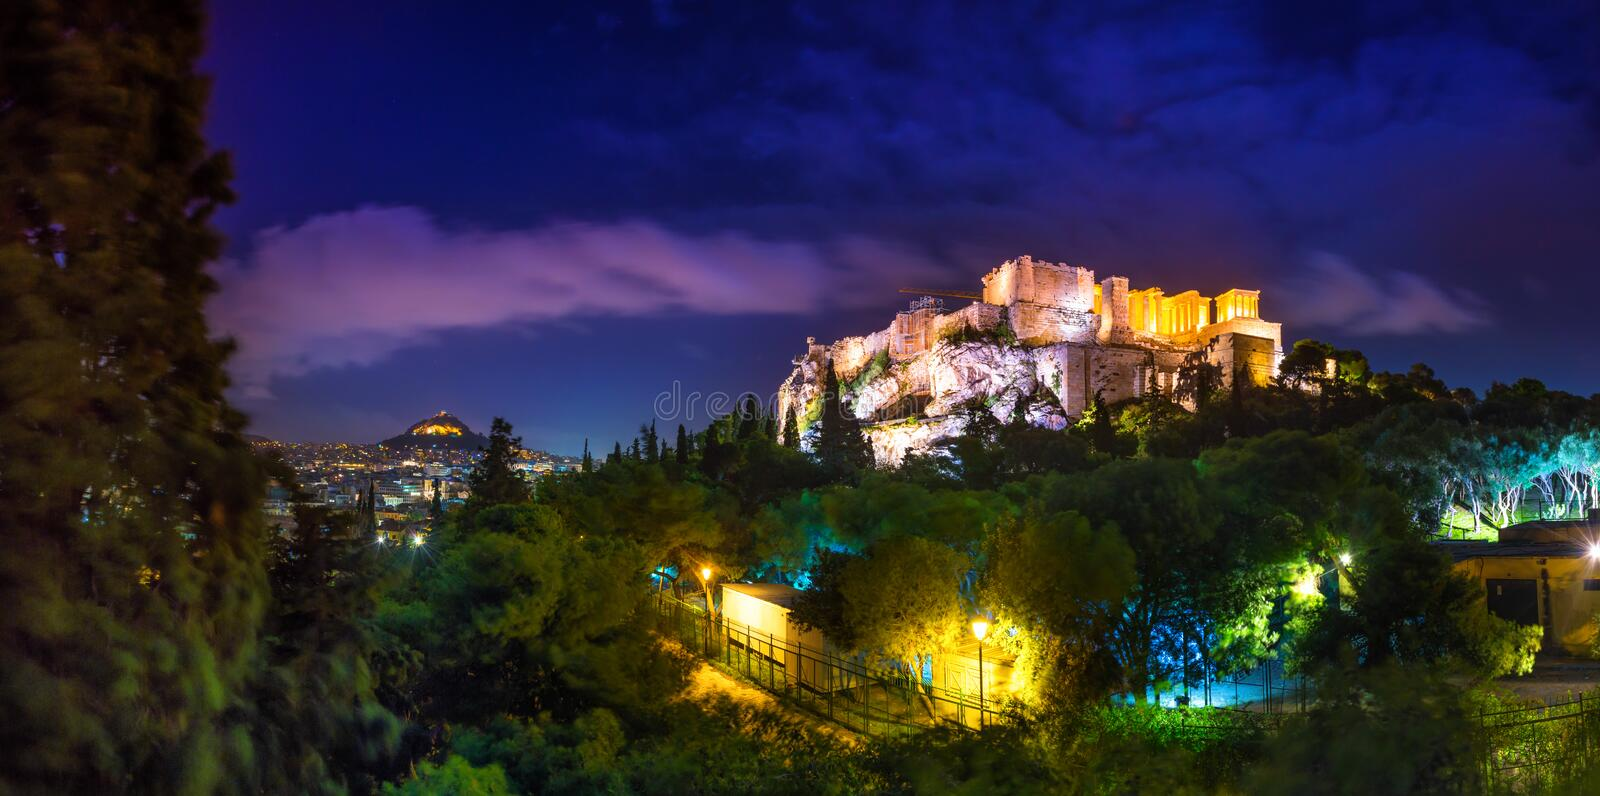 Illuminated Acropolis with Parthenon at night, Greece. stock images